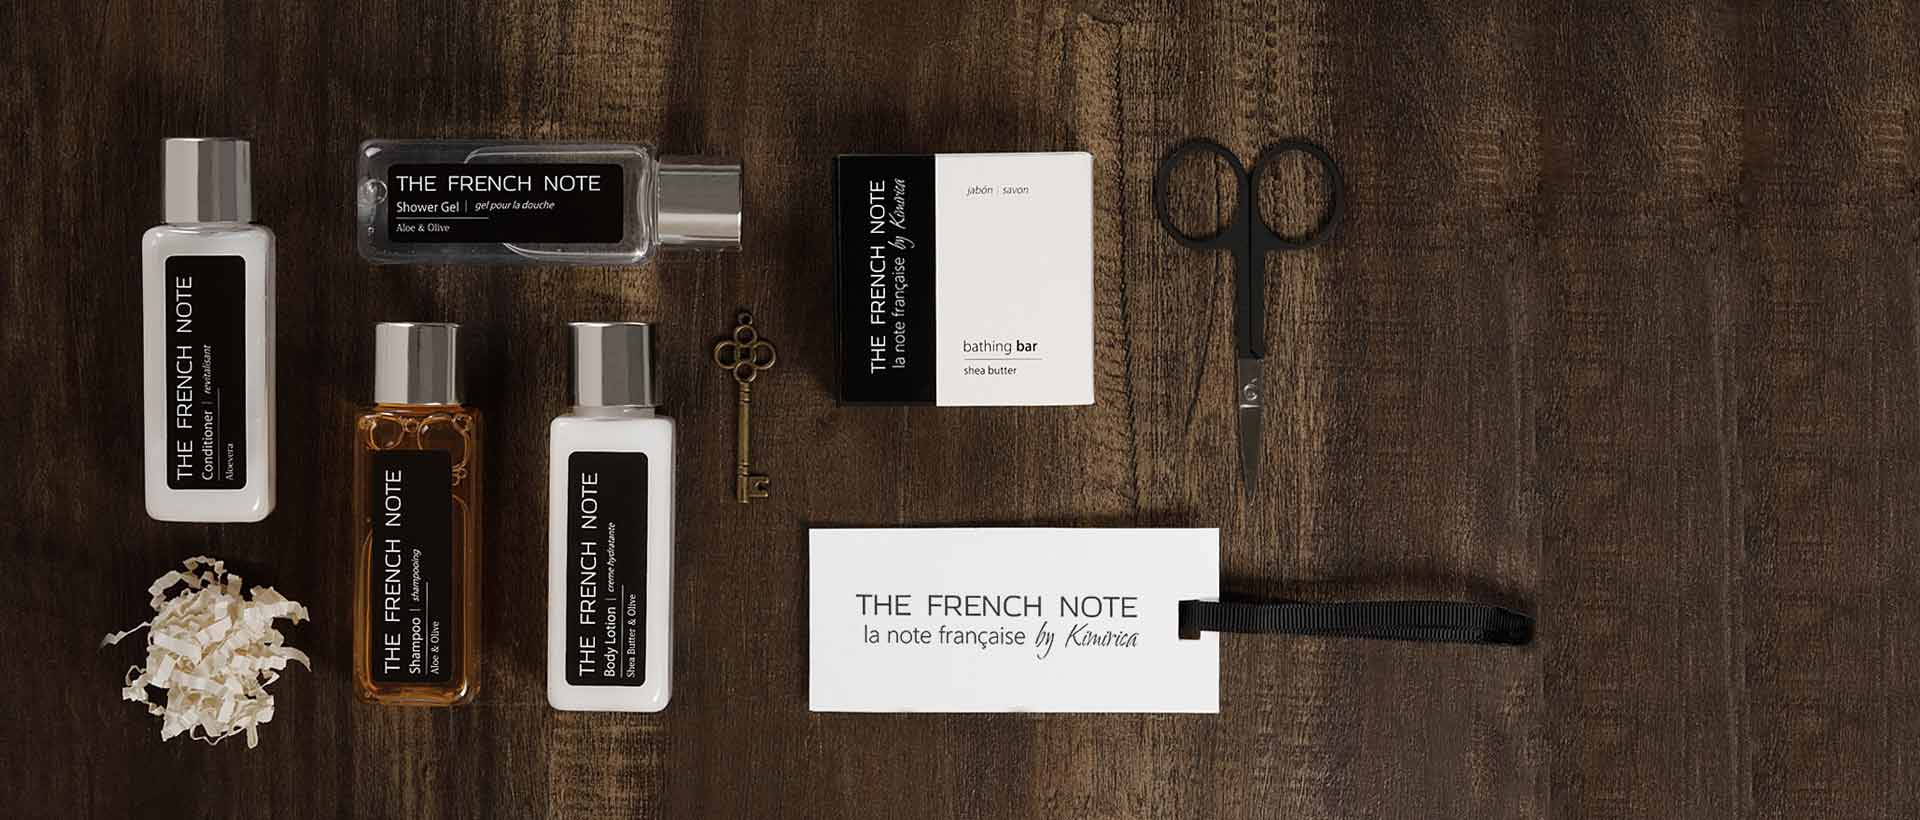 Hotel Toiletries India, The French Note®, Kimirica Hunter International